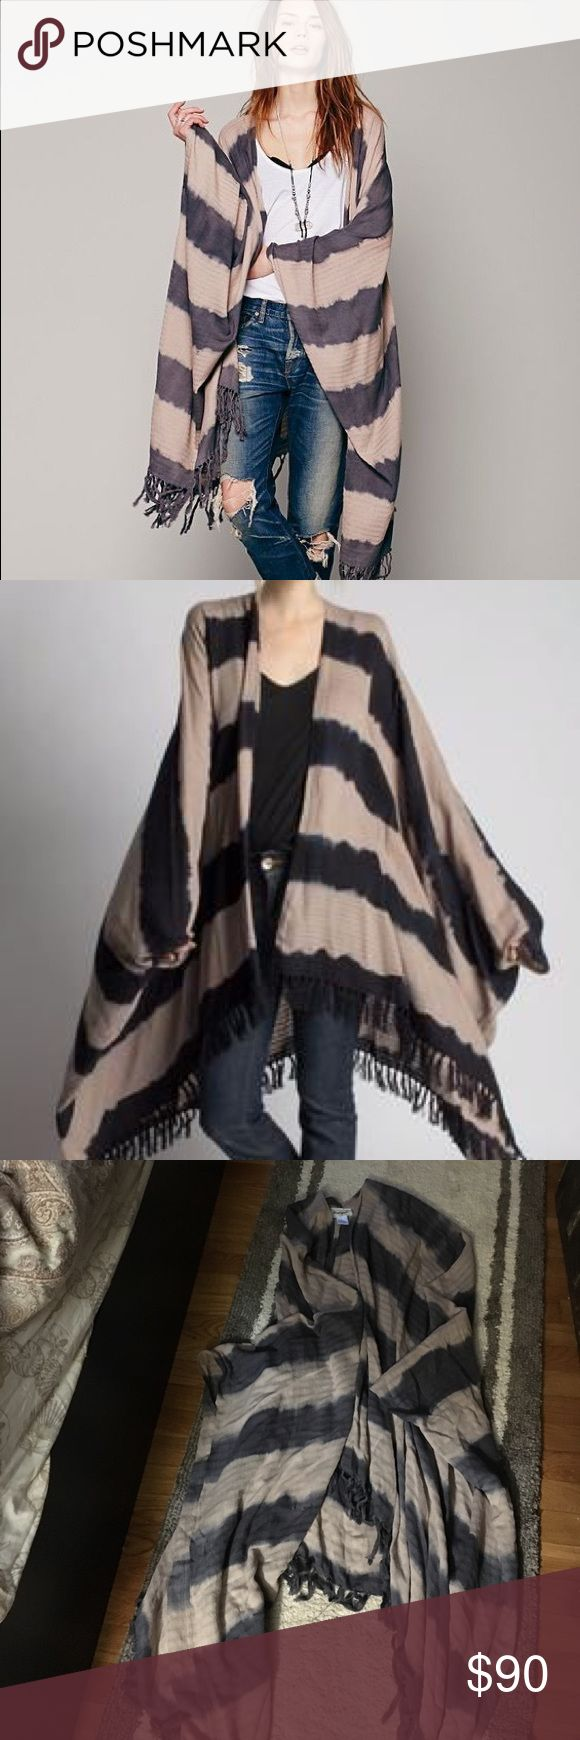 Free People by ketzali dye tie stripe poncho Amazing .. wonderful and fun!! Naturally dyed striped poncho with armholes - handmade  in Guatemala - 100% cotton - one size fits most - pic 2 is for styling and fit - the poncho for sale is grey and tan Free People Other